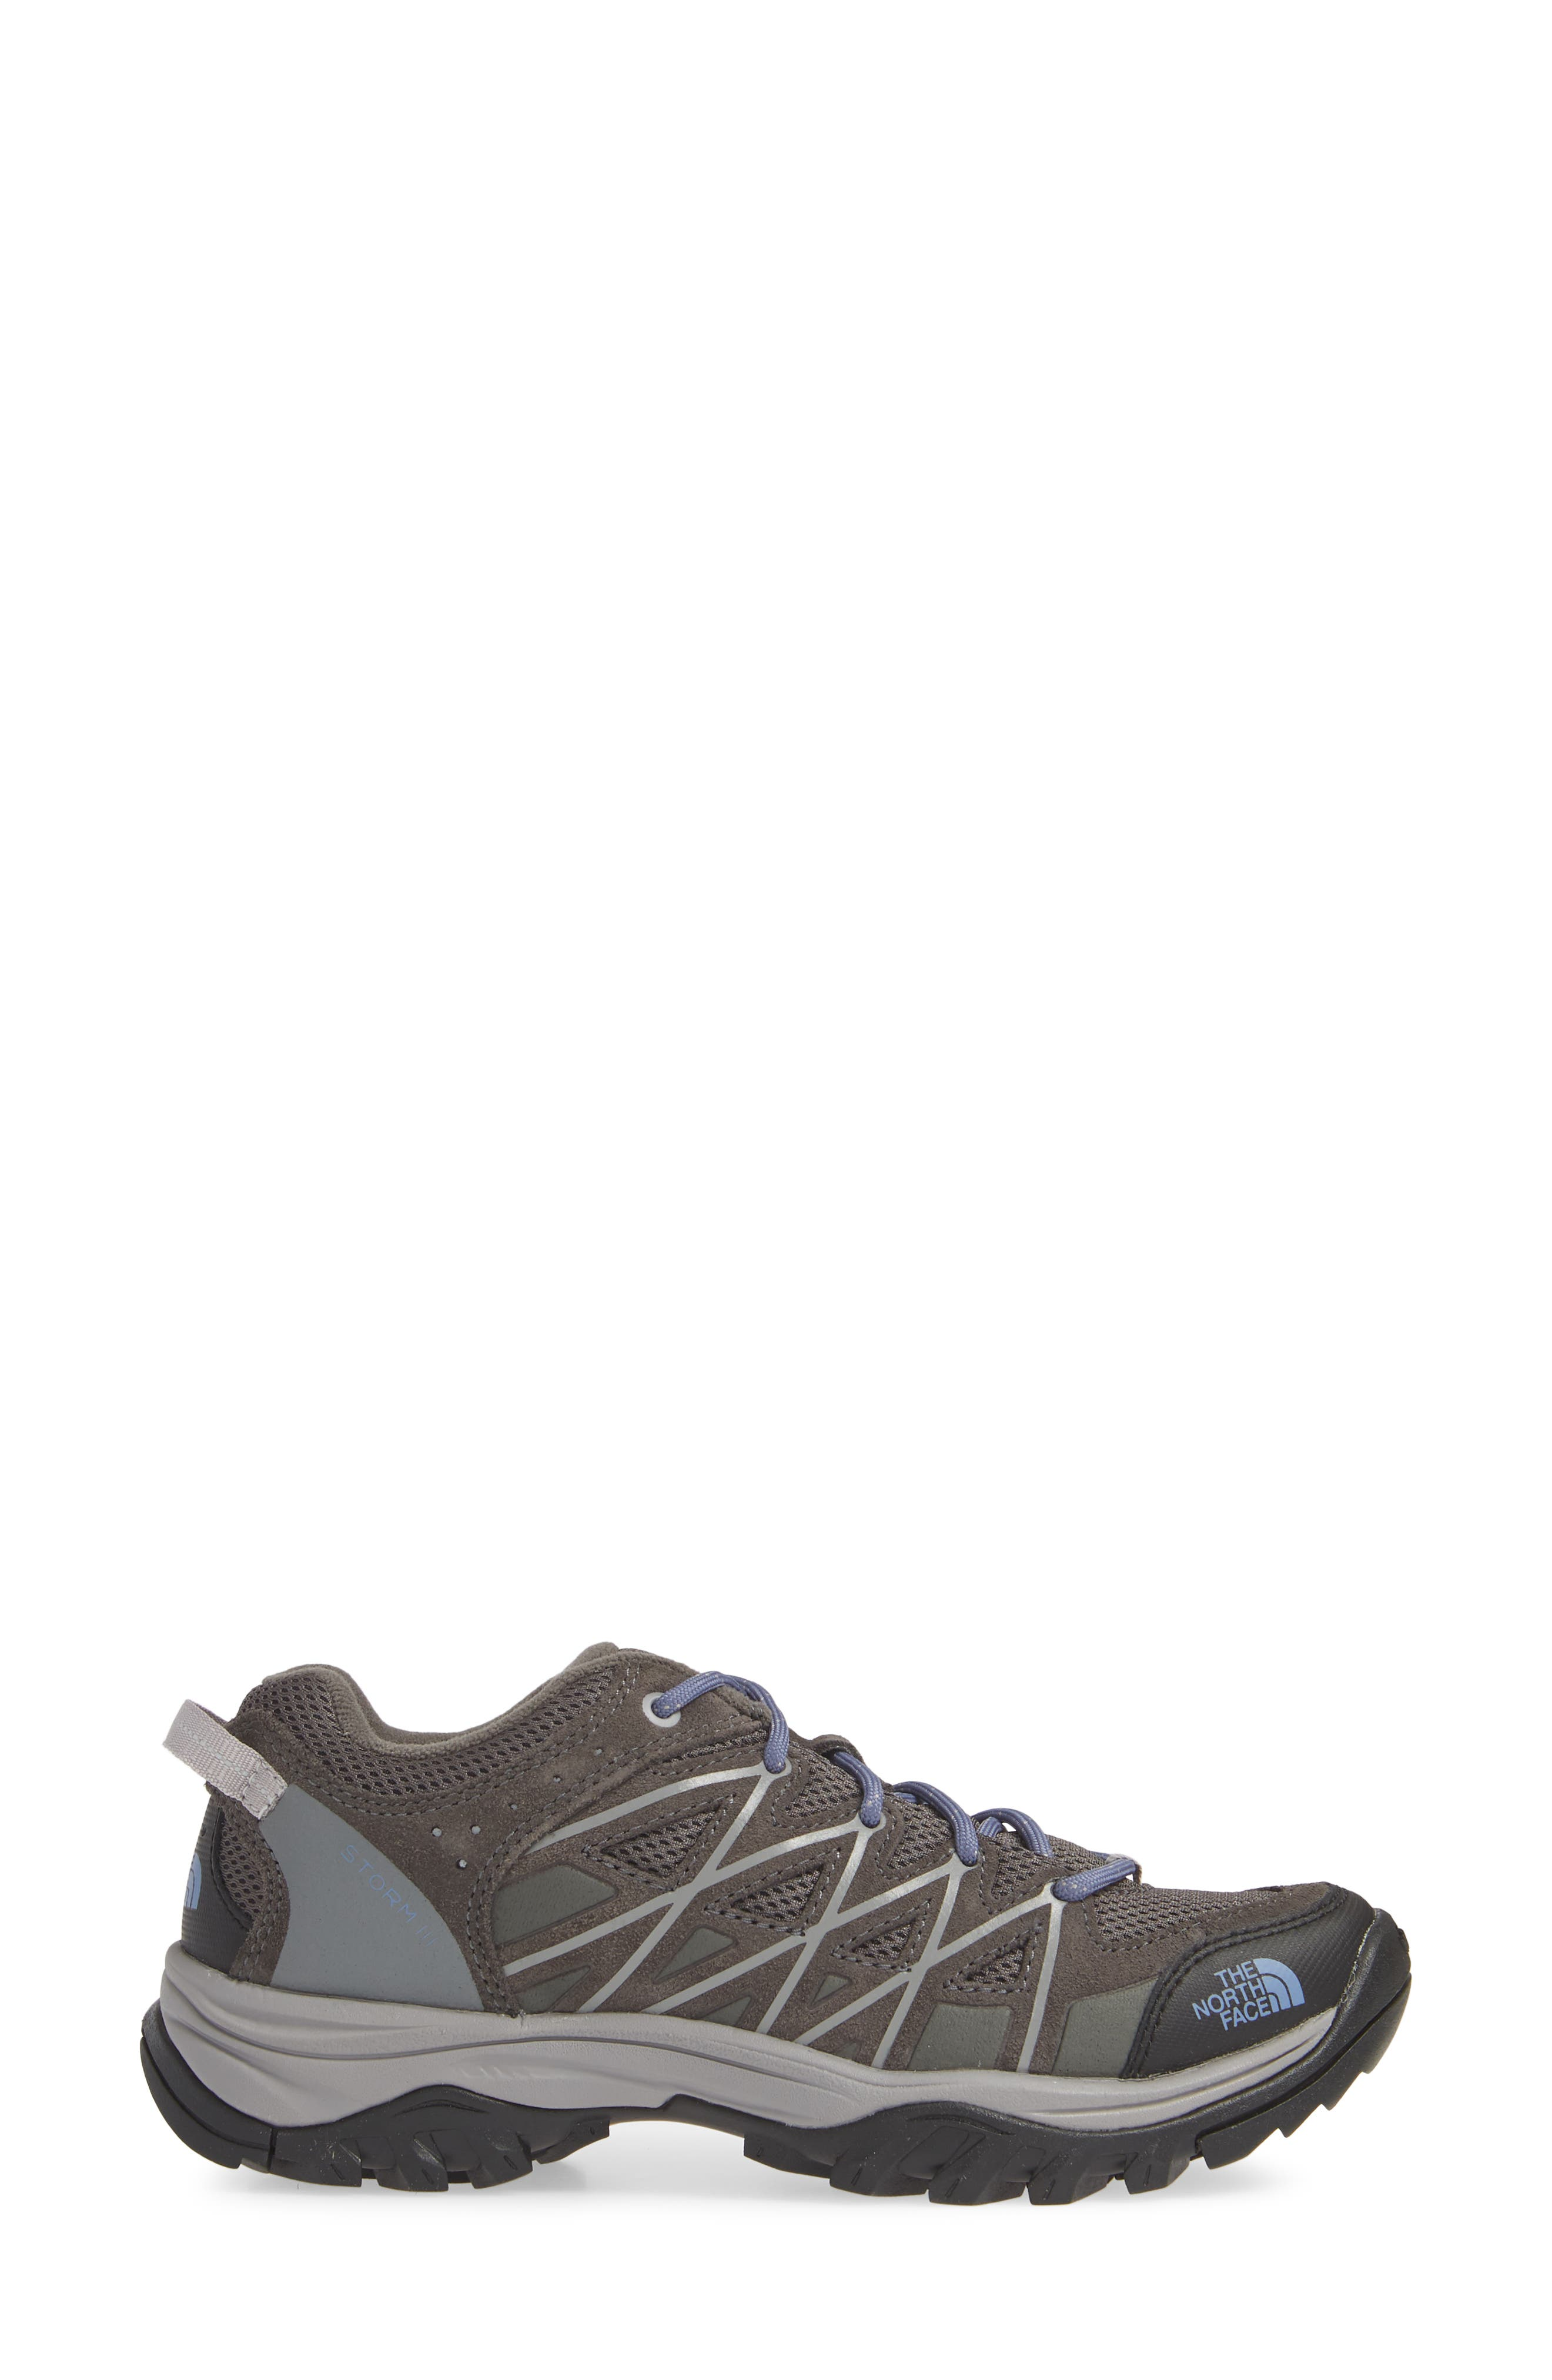 THE NORTH FACE, Storm III Waterproof Hiking Sneaker, Alternate thumbnail 3, color, DARK GULL GREY/ MARLIN BLUE